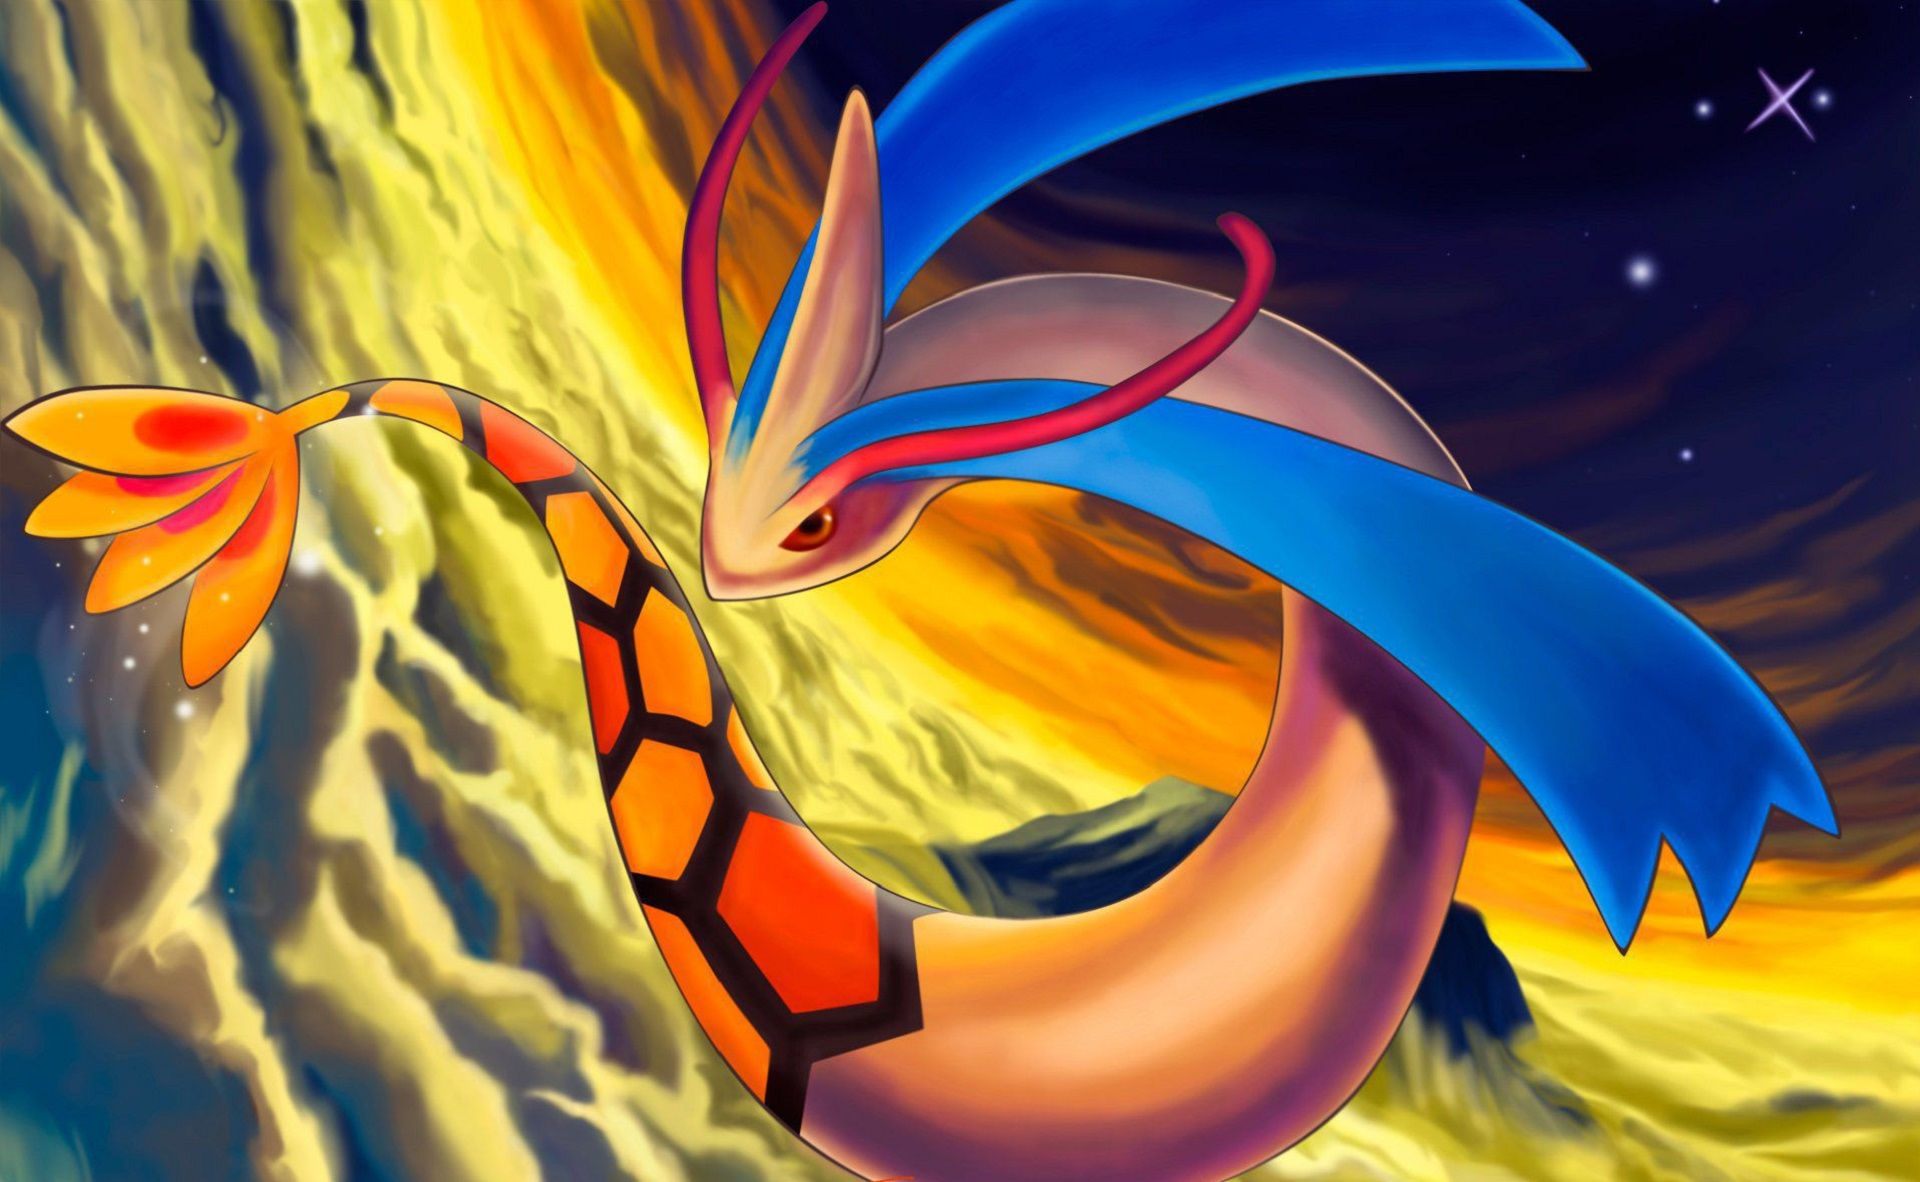 Milotic High Quality Wallpapers